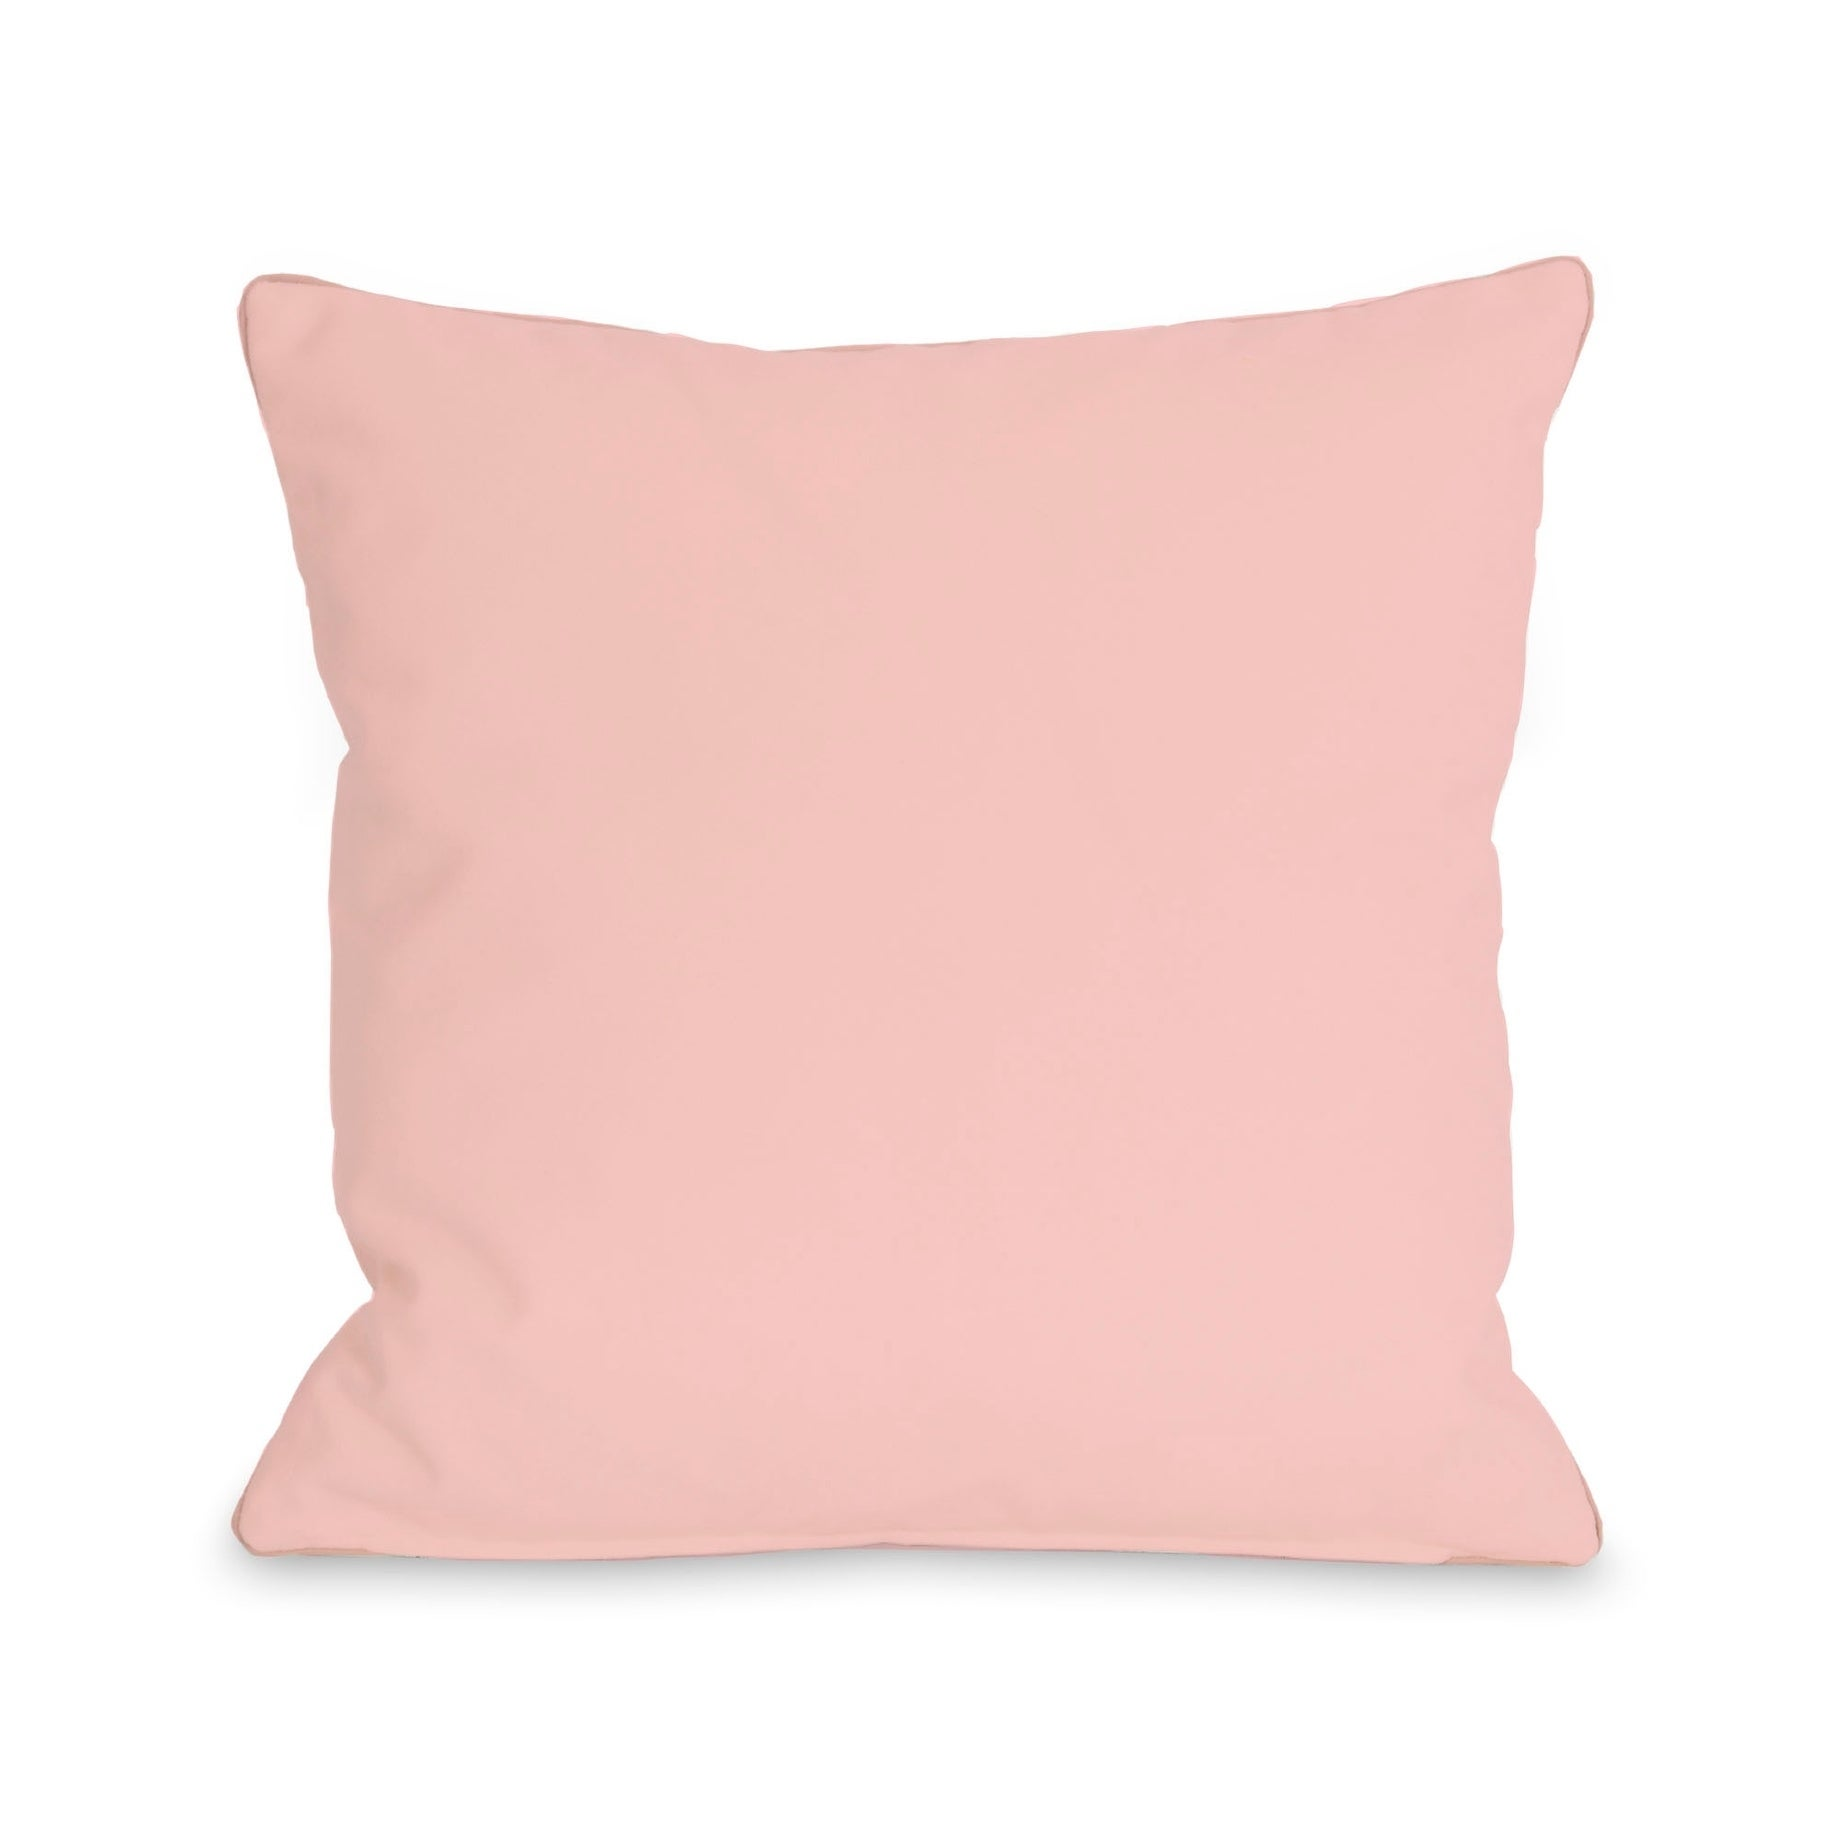 Solid Dusty Pink Pillow By Obc Overstock 21867364